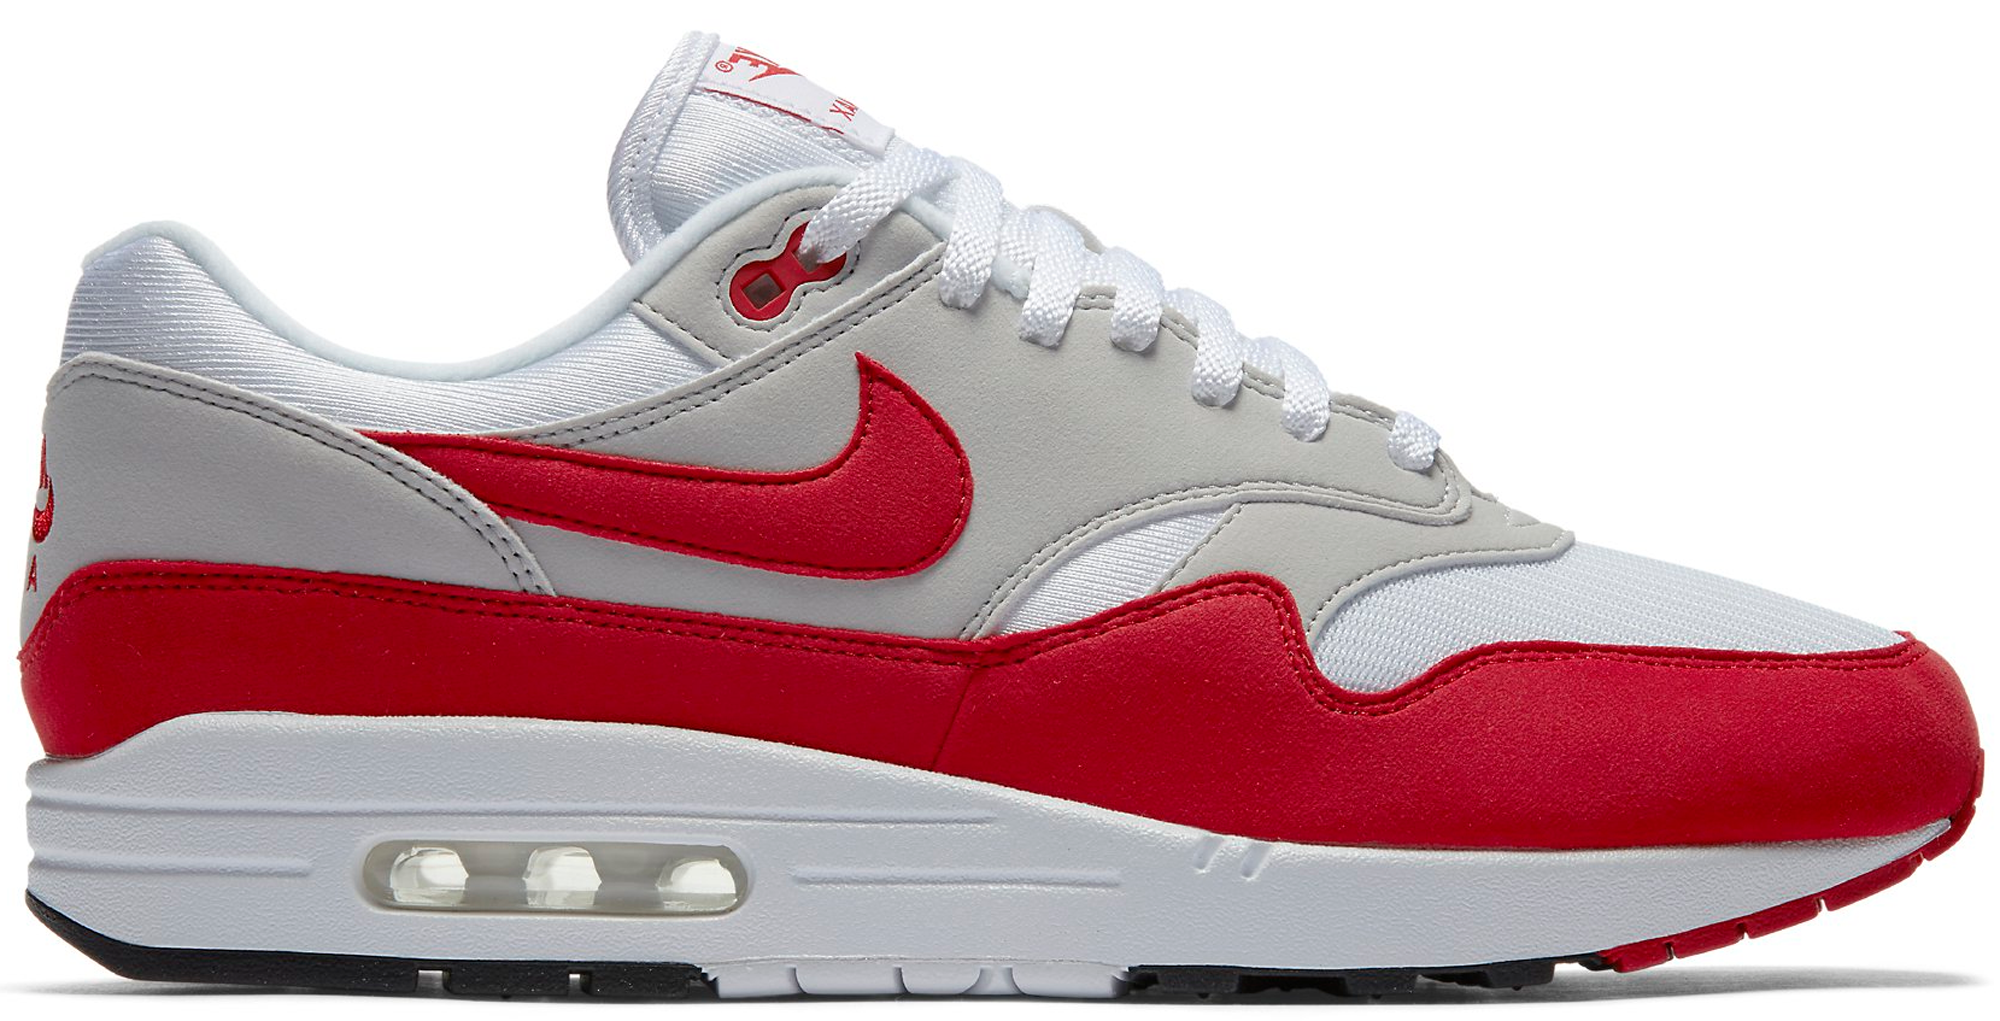 nike air max 1 og red 2017. Black Bedroom Furniture Sets. Home Design Ideas